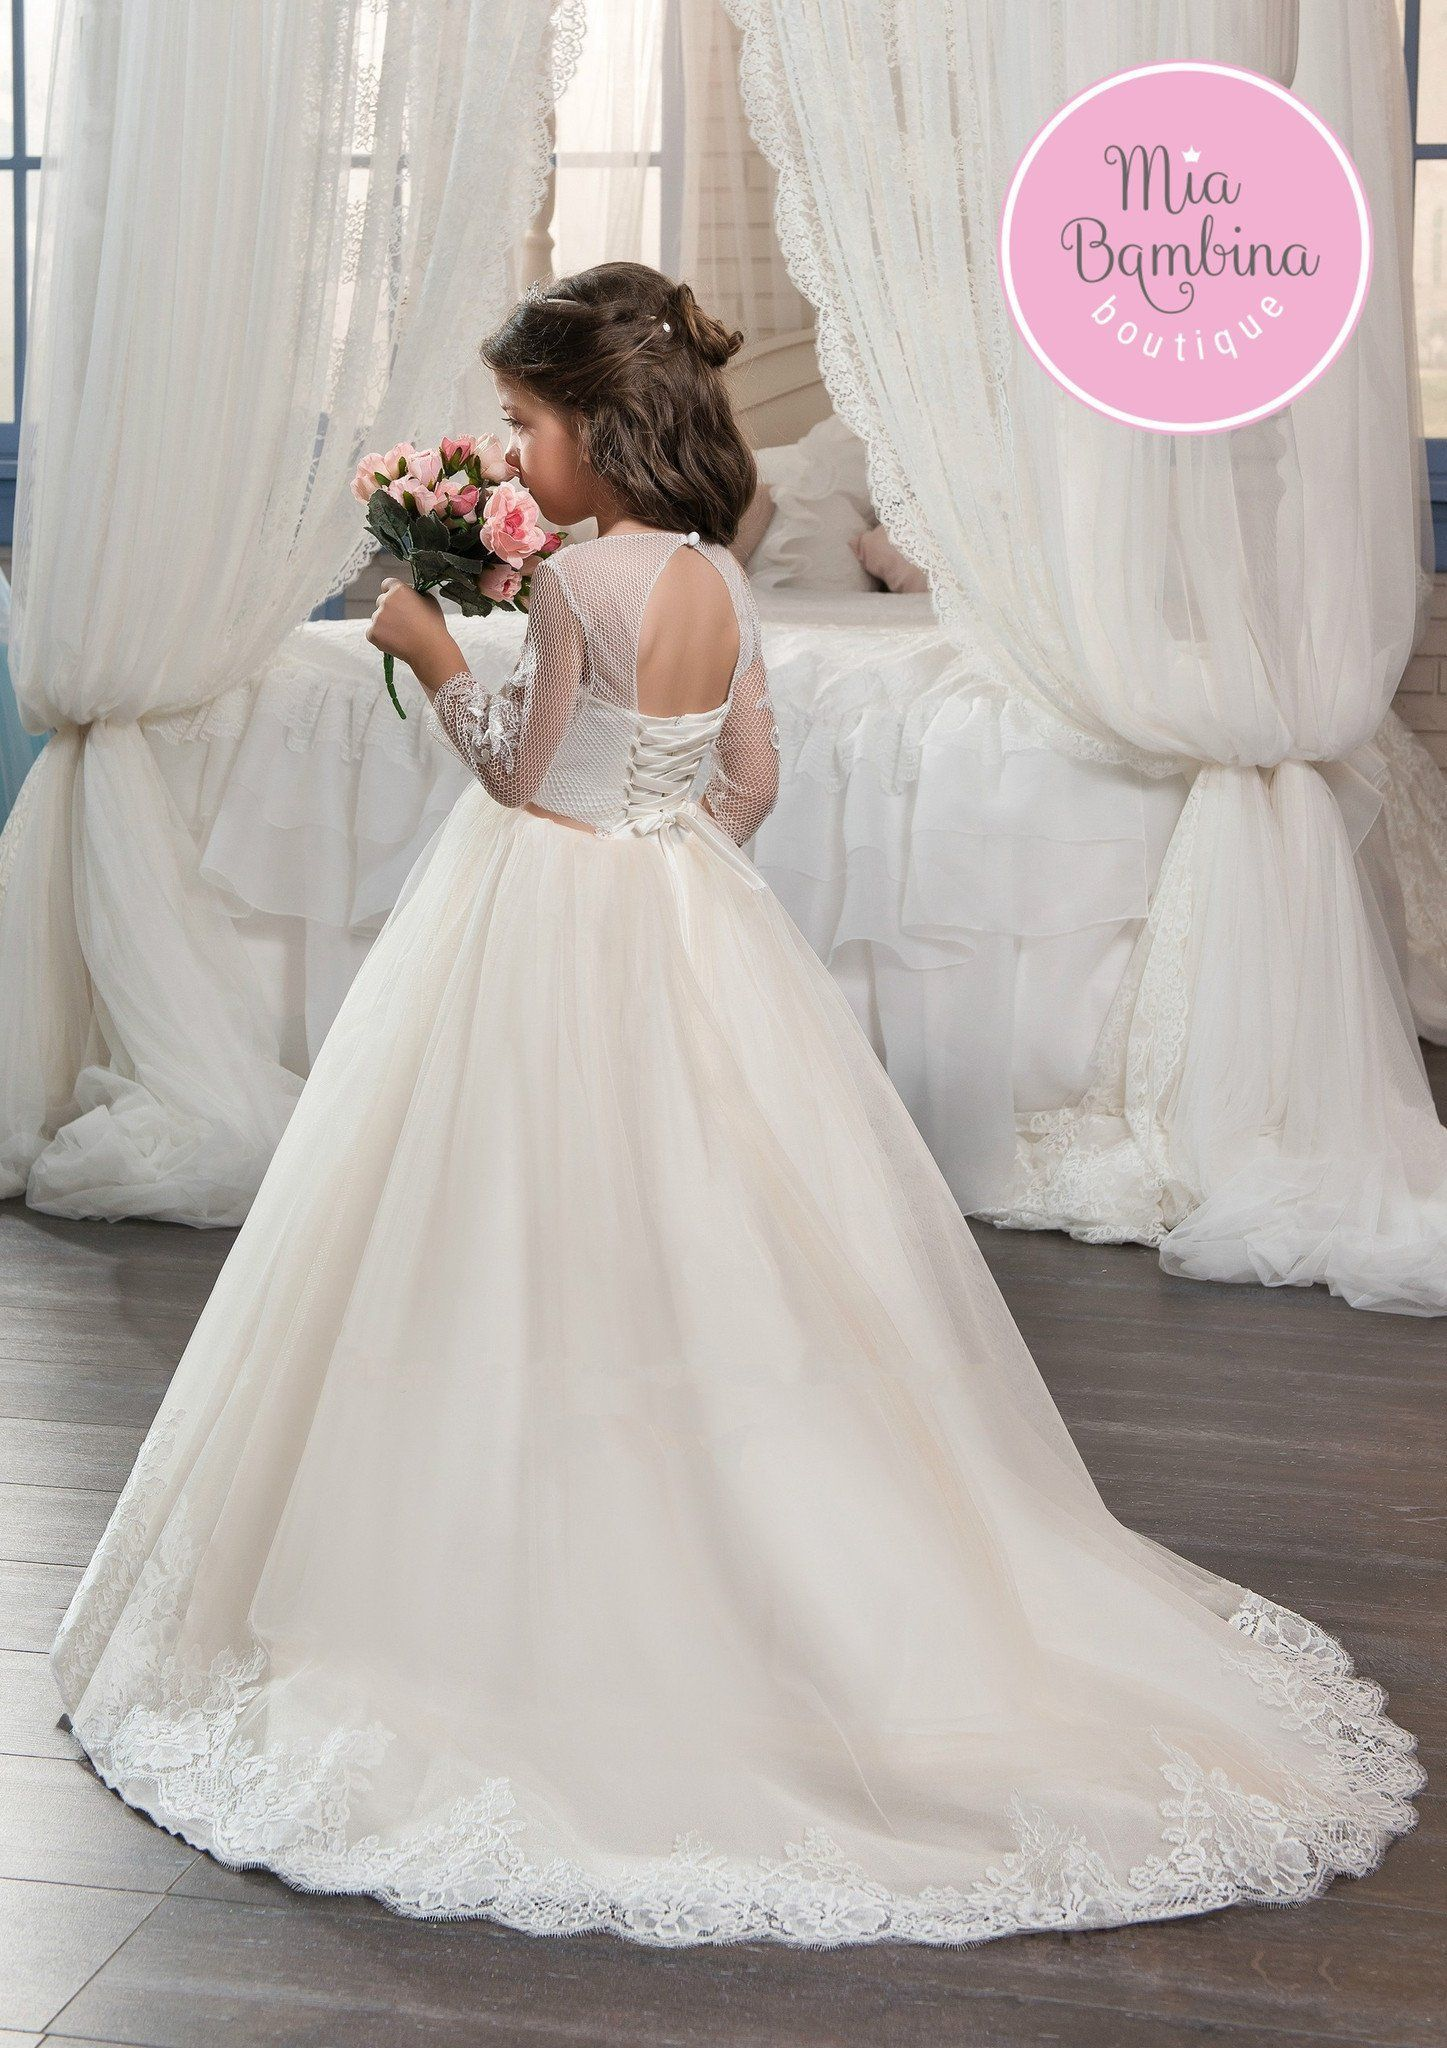 The Pittsburgh flower girl dress is designed to make her a star of